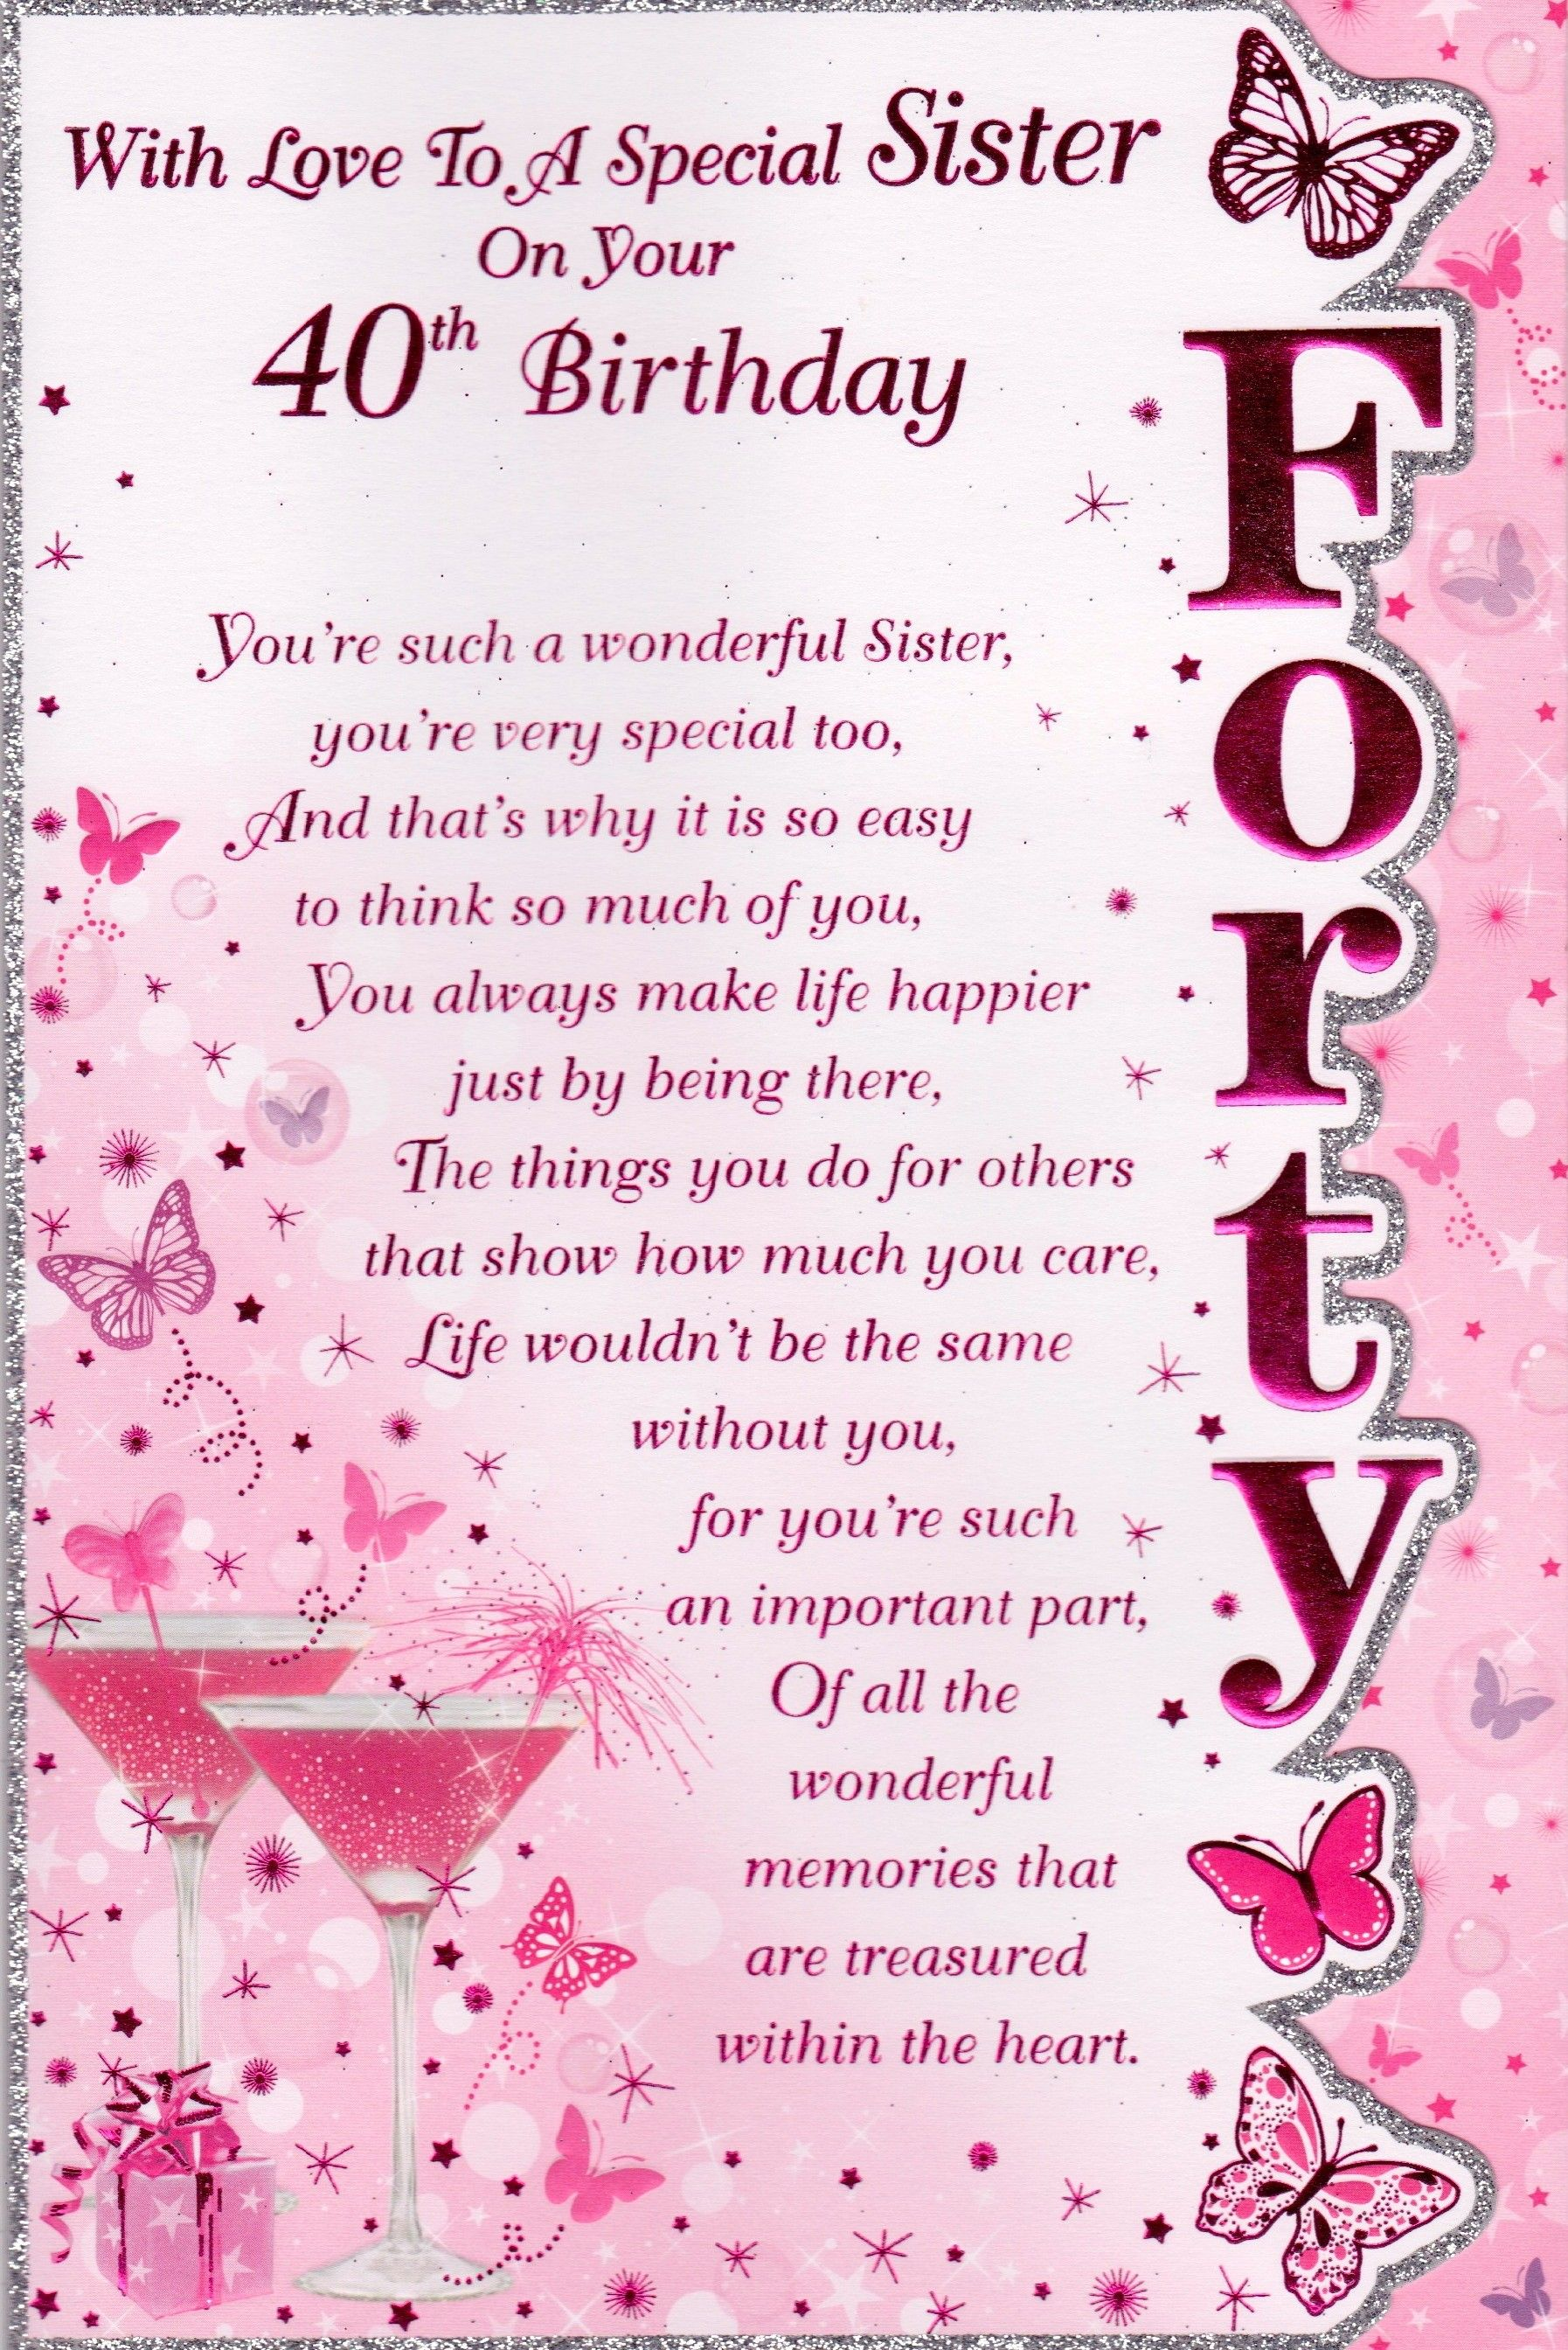 Happy Birthday Quotes For Sister Funny Happy 40th Birthday